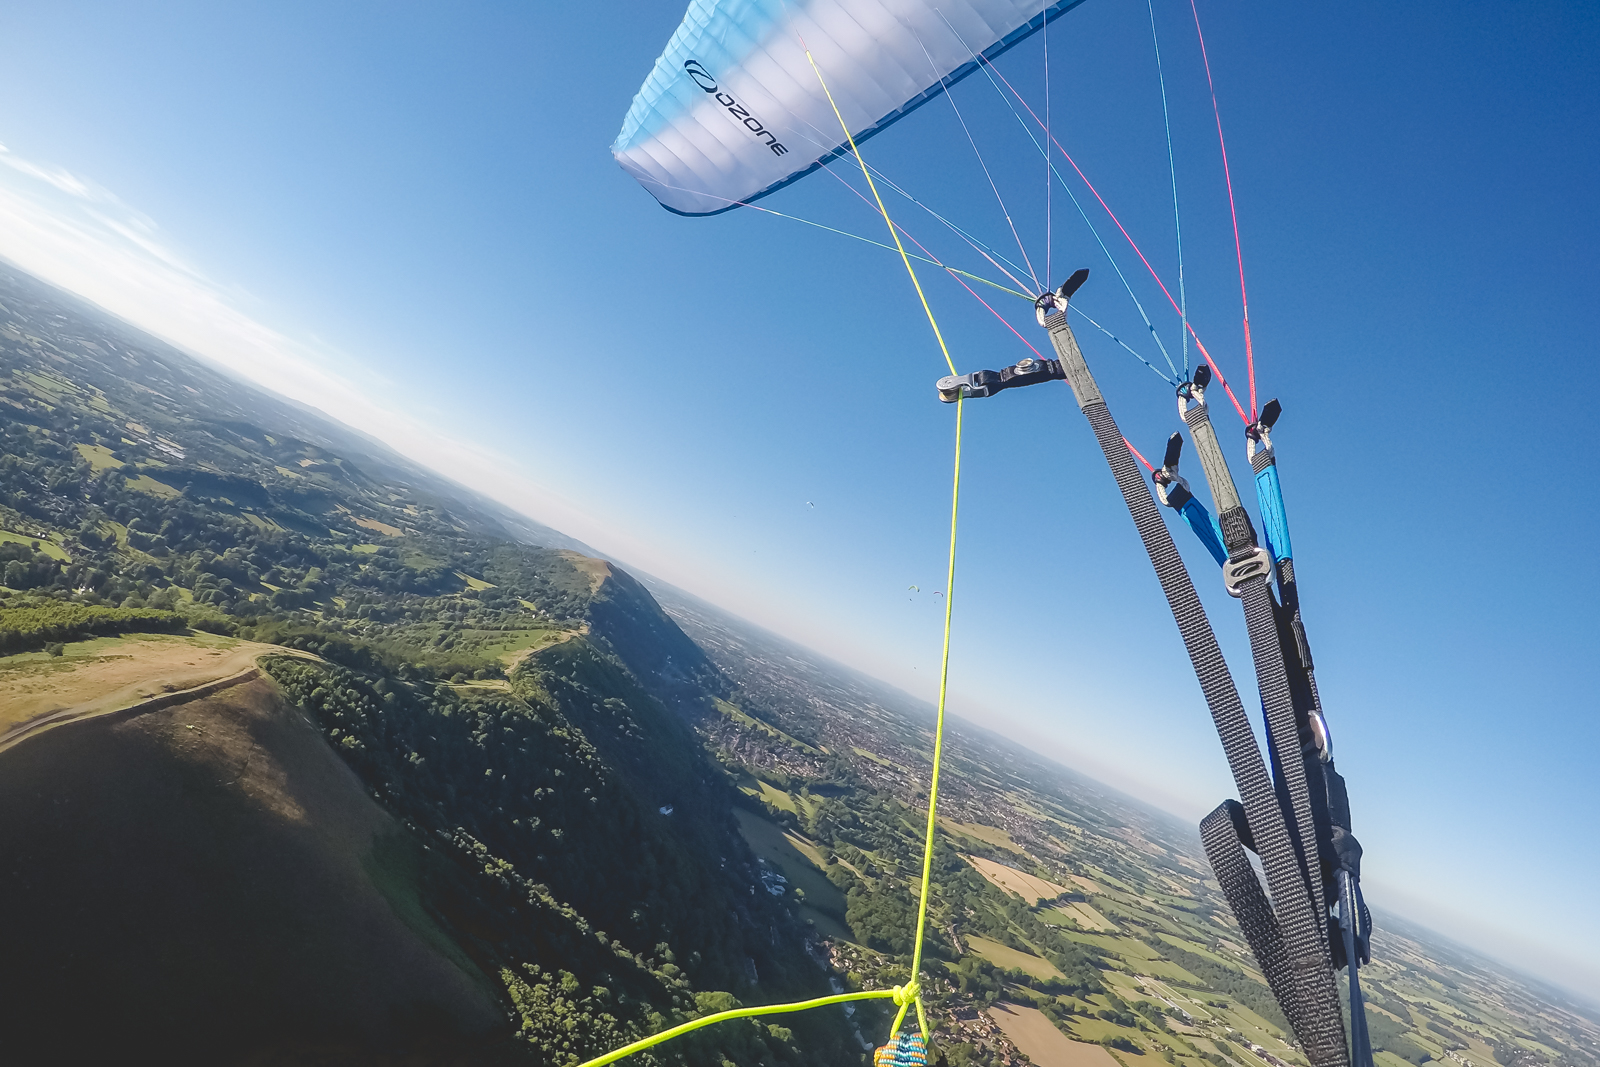 Paragliding over the Malverns